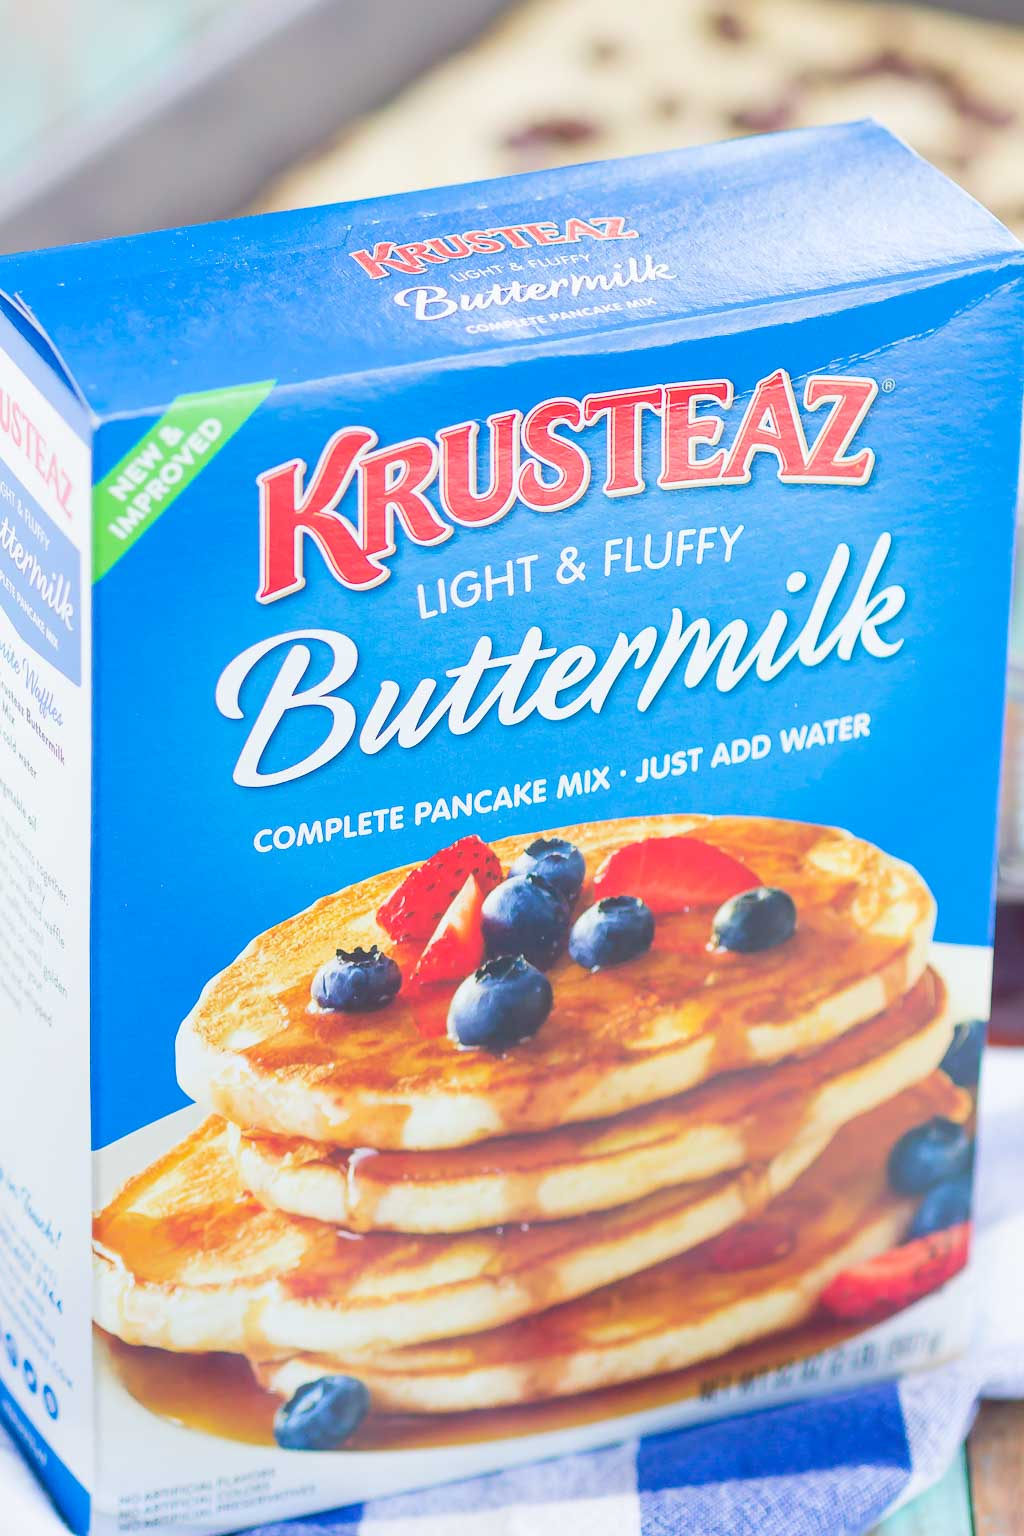 box of Krusteaz pancake mix